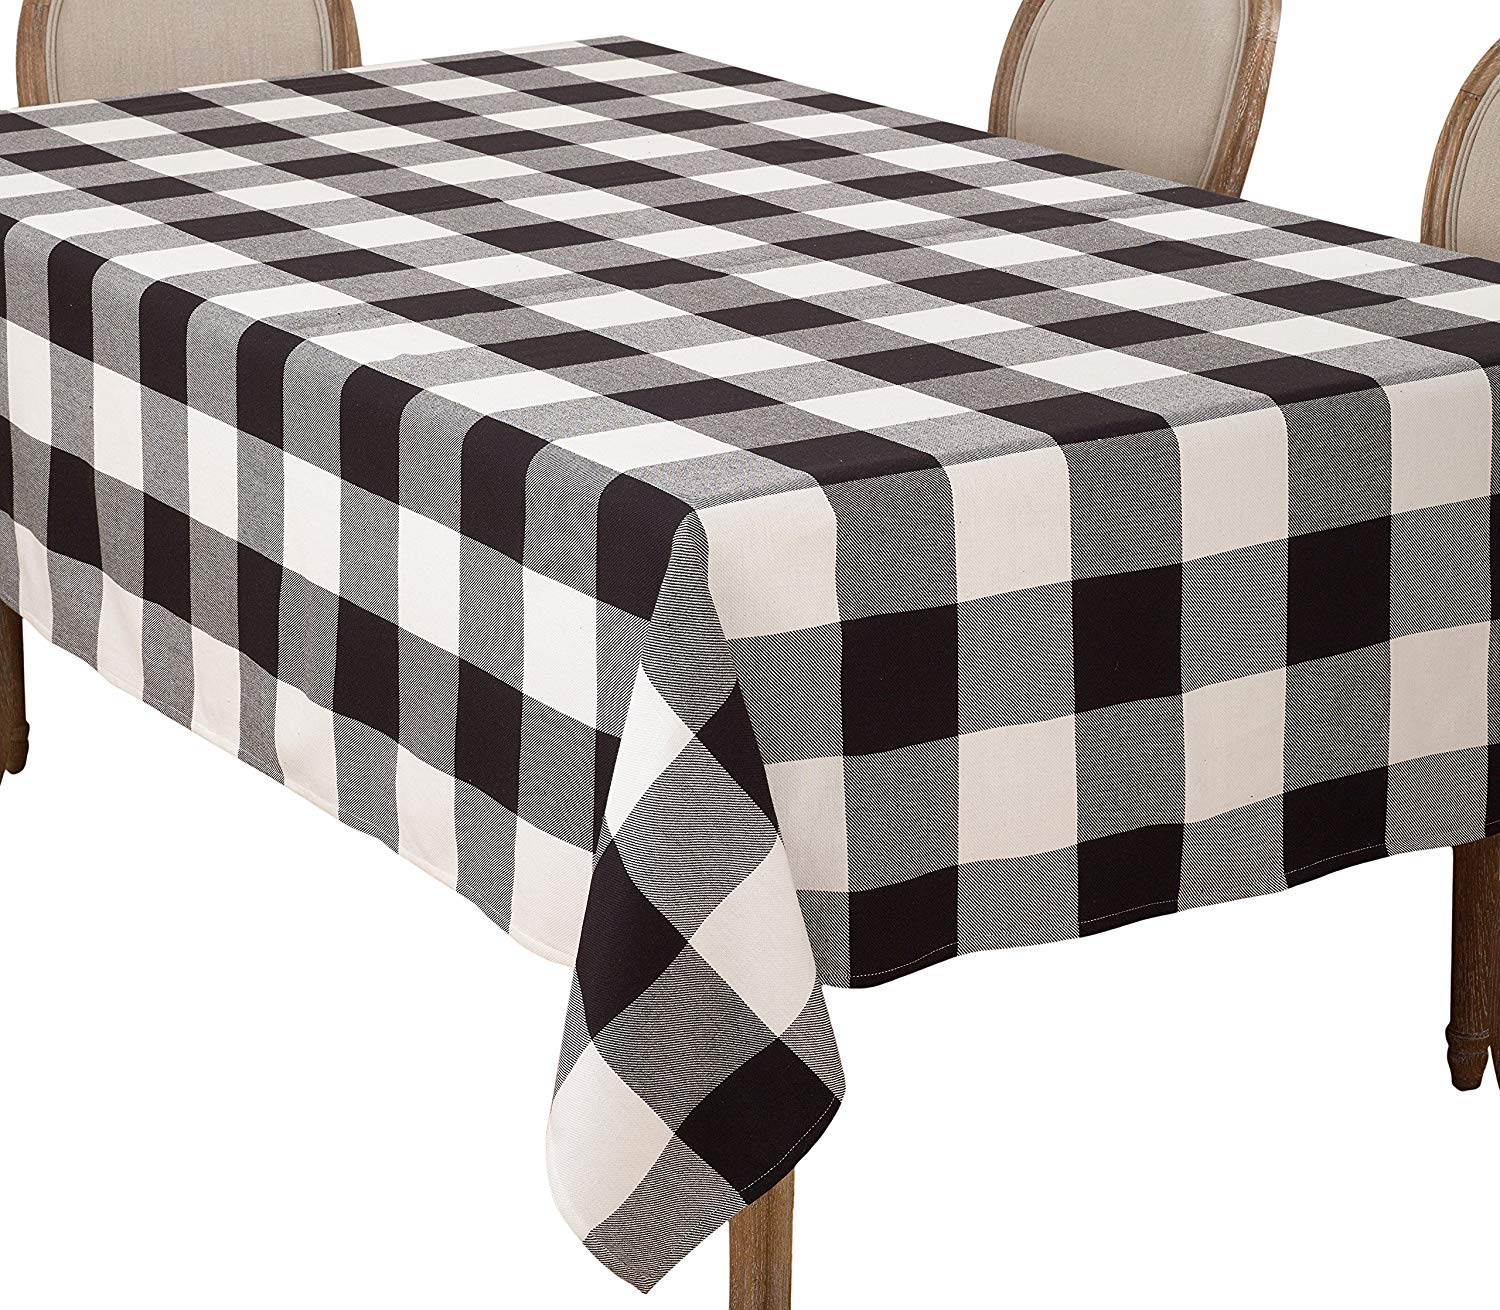 saro lifestyle buffalo plaid check design cotton accent your focus table runner tablecloth black home kitchen green marble top coffee inch furniture legs small patio seating sets